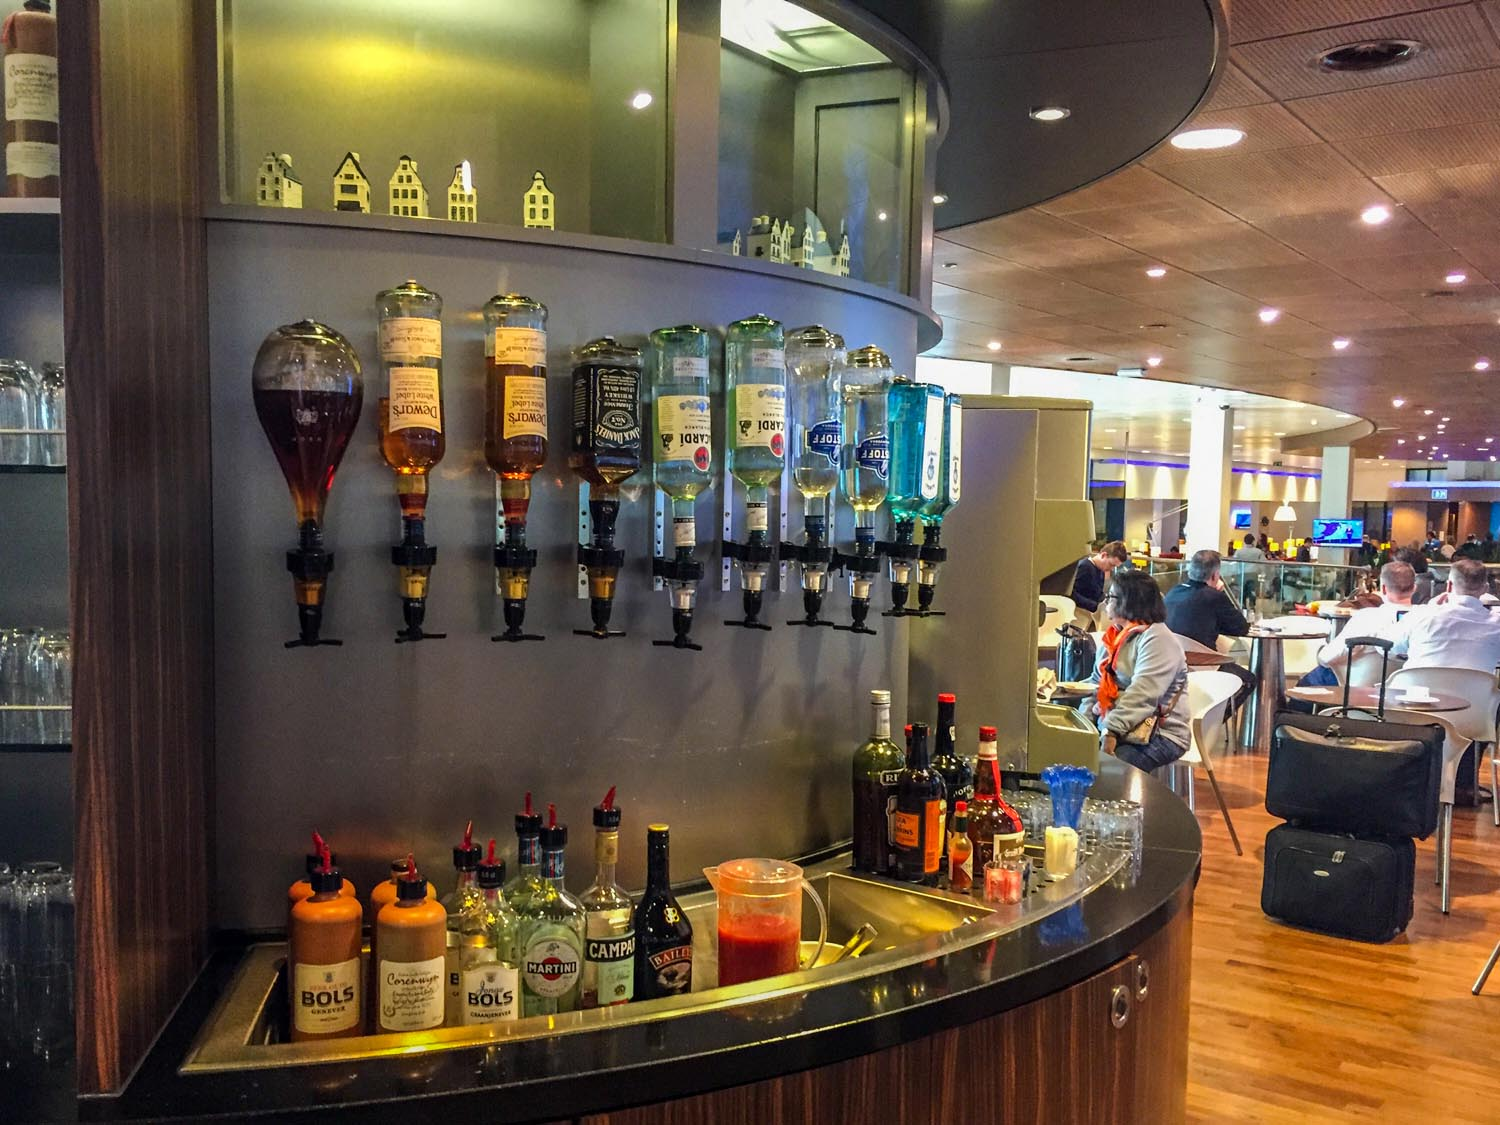 The self-serve bar at KLM Crown Lounge 52